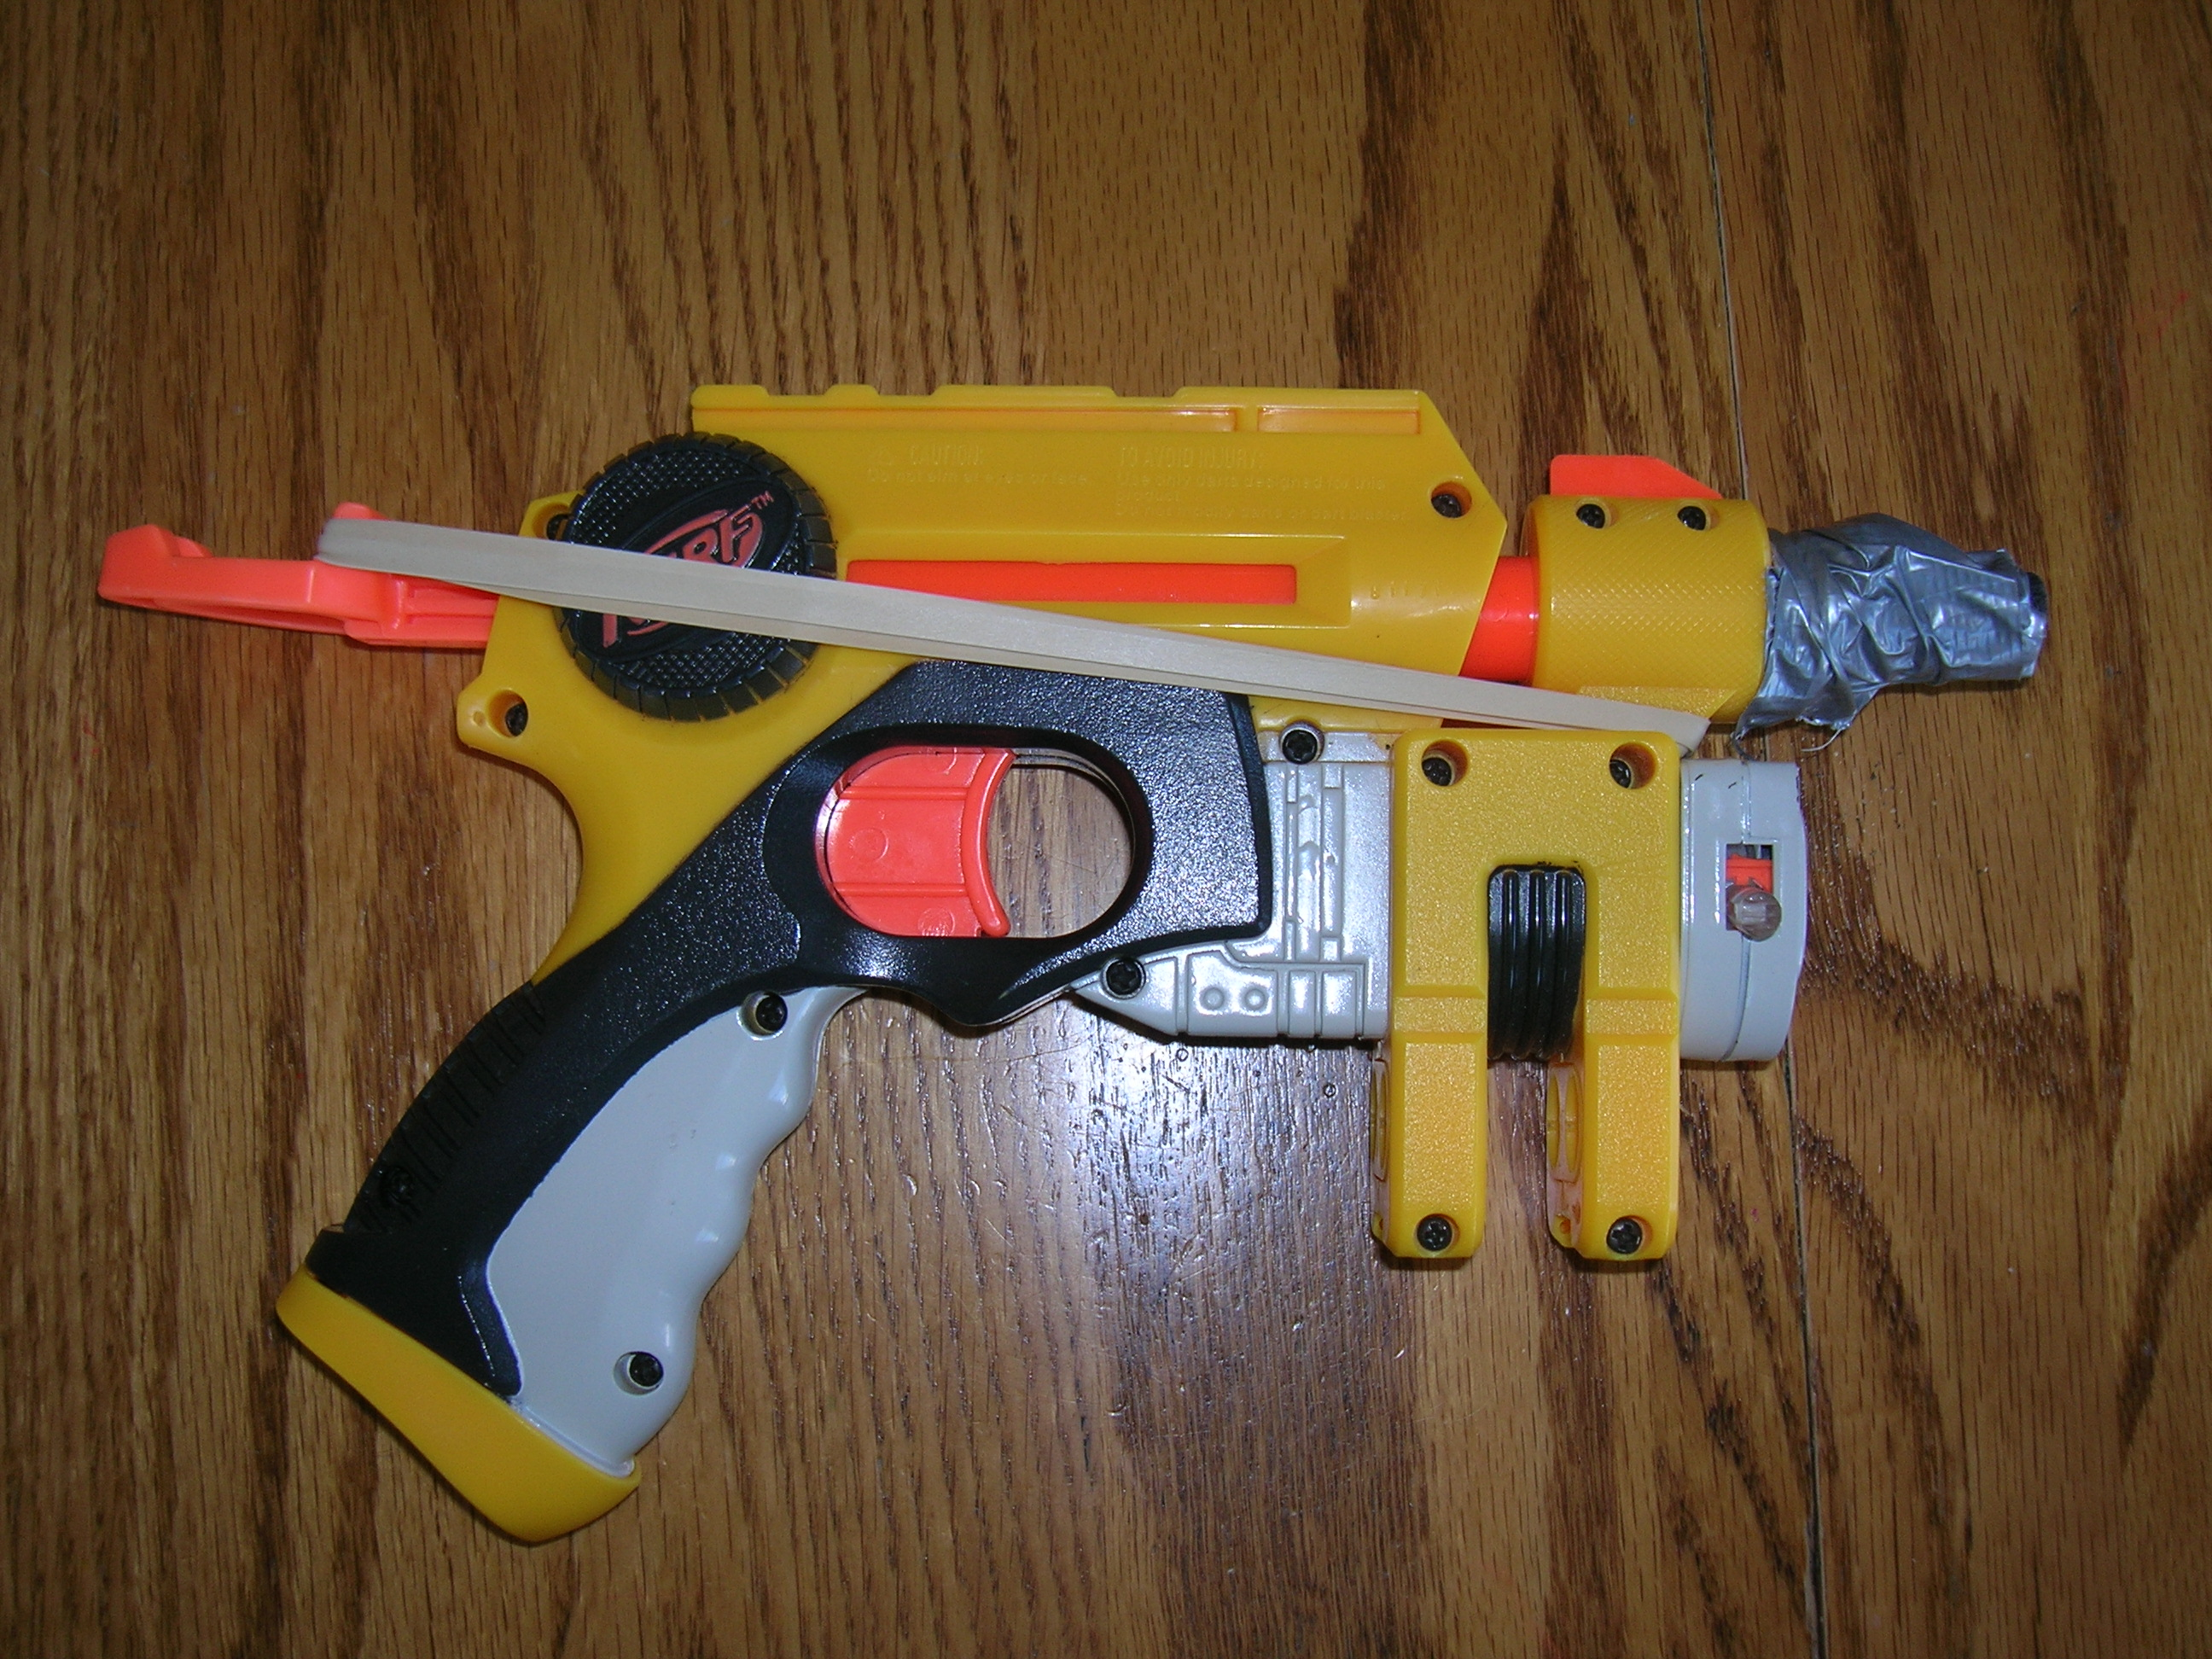 Picture of Nerf Gun to Airsoft Gun